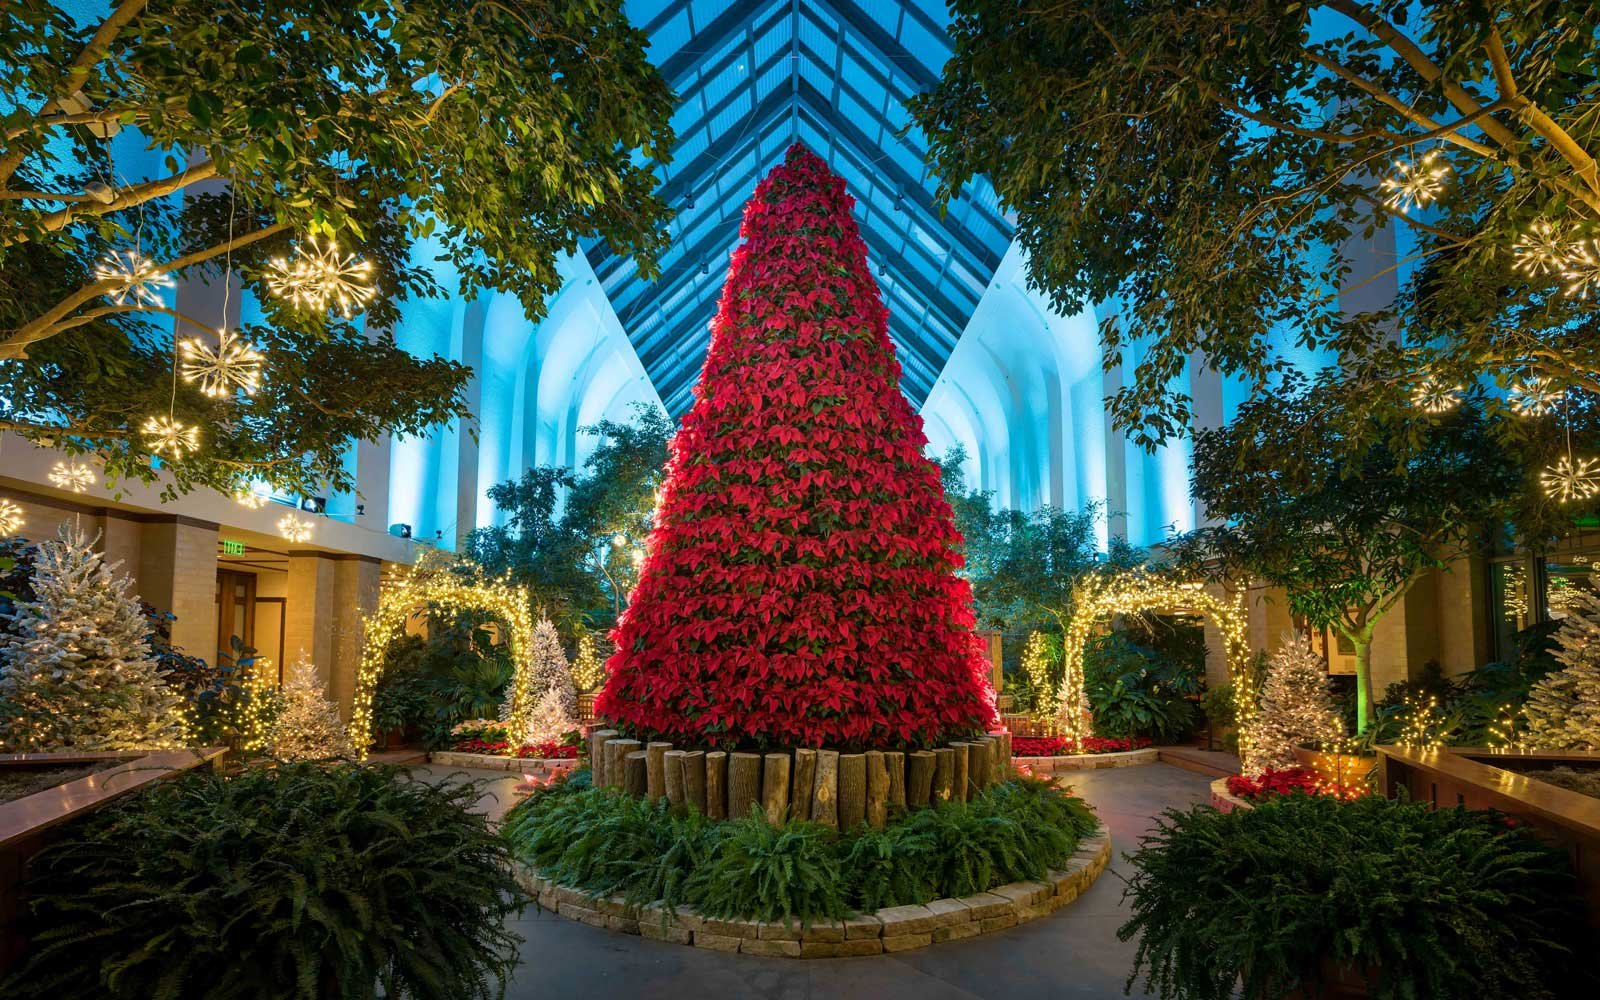 The Poinsettia Christmas Tree in Omaha,  Nebraska